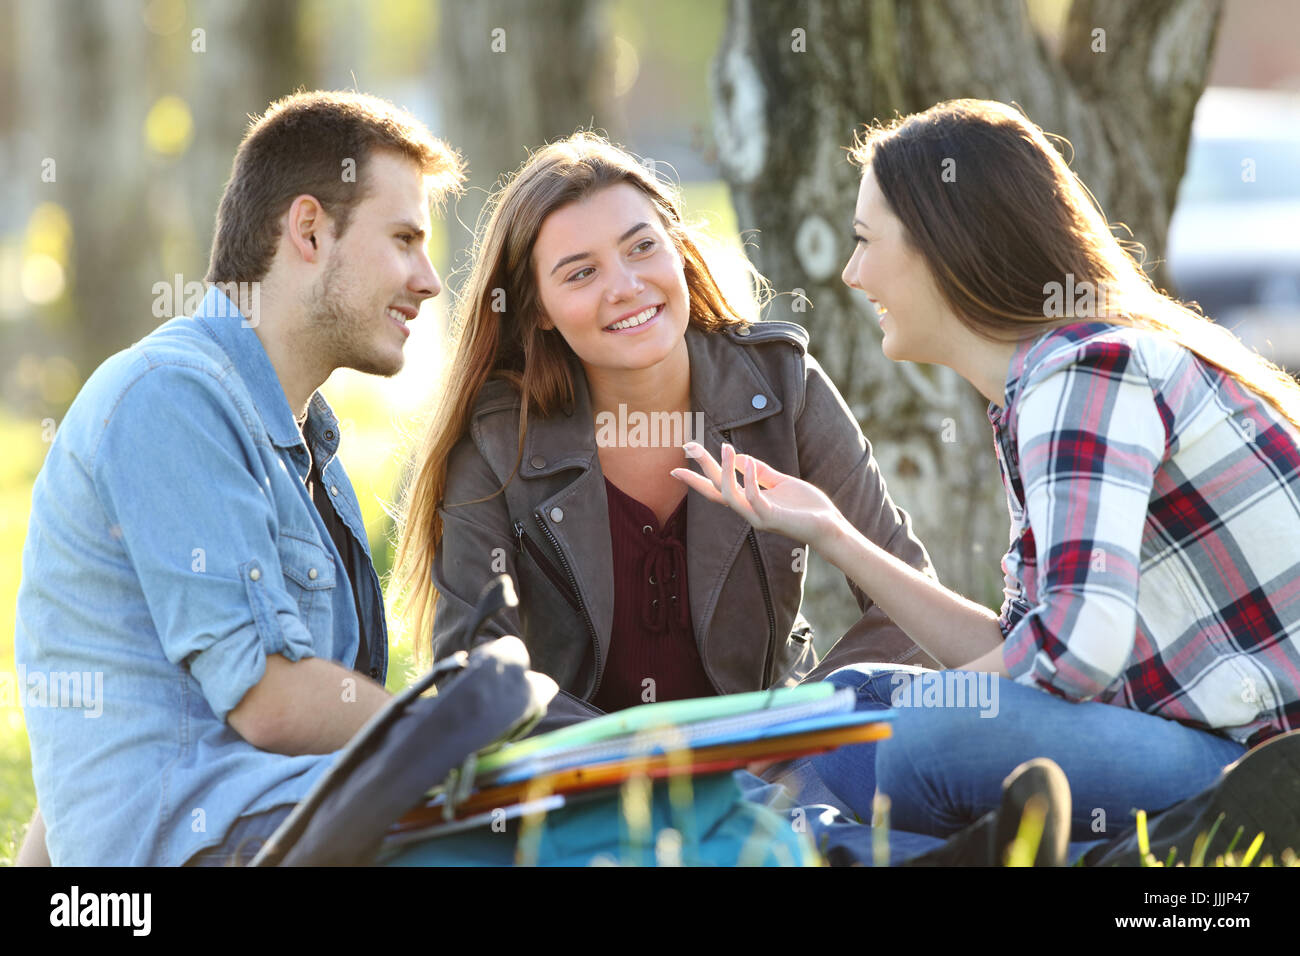 Three students talking after classes beside books and ruckpacks sitting on the grass in a park - Stock Image